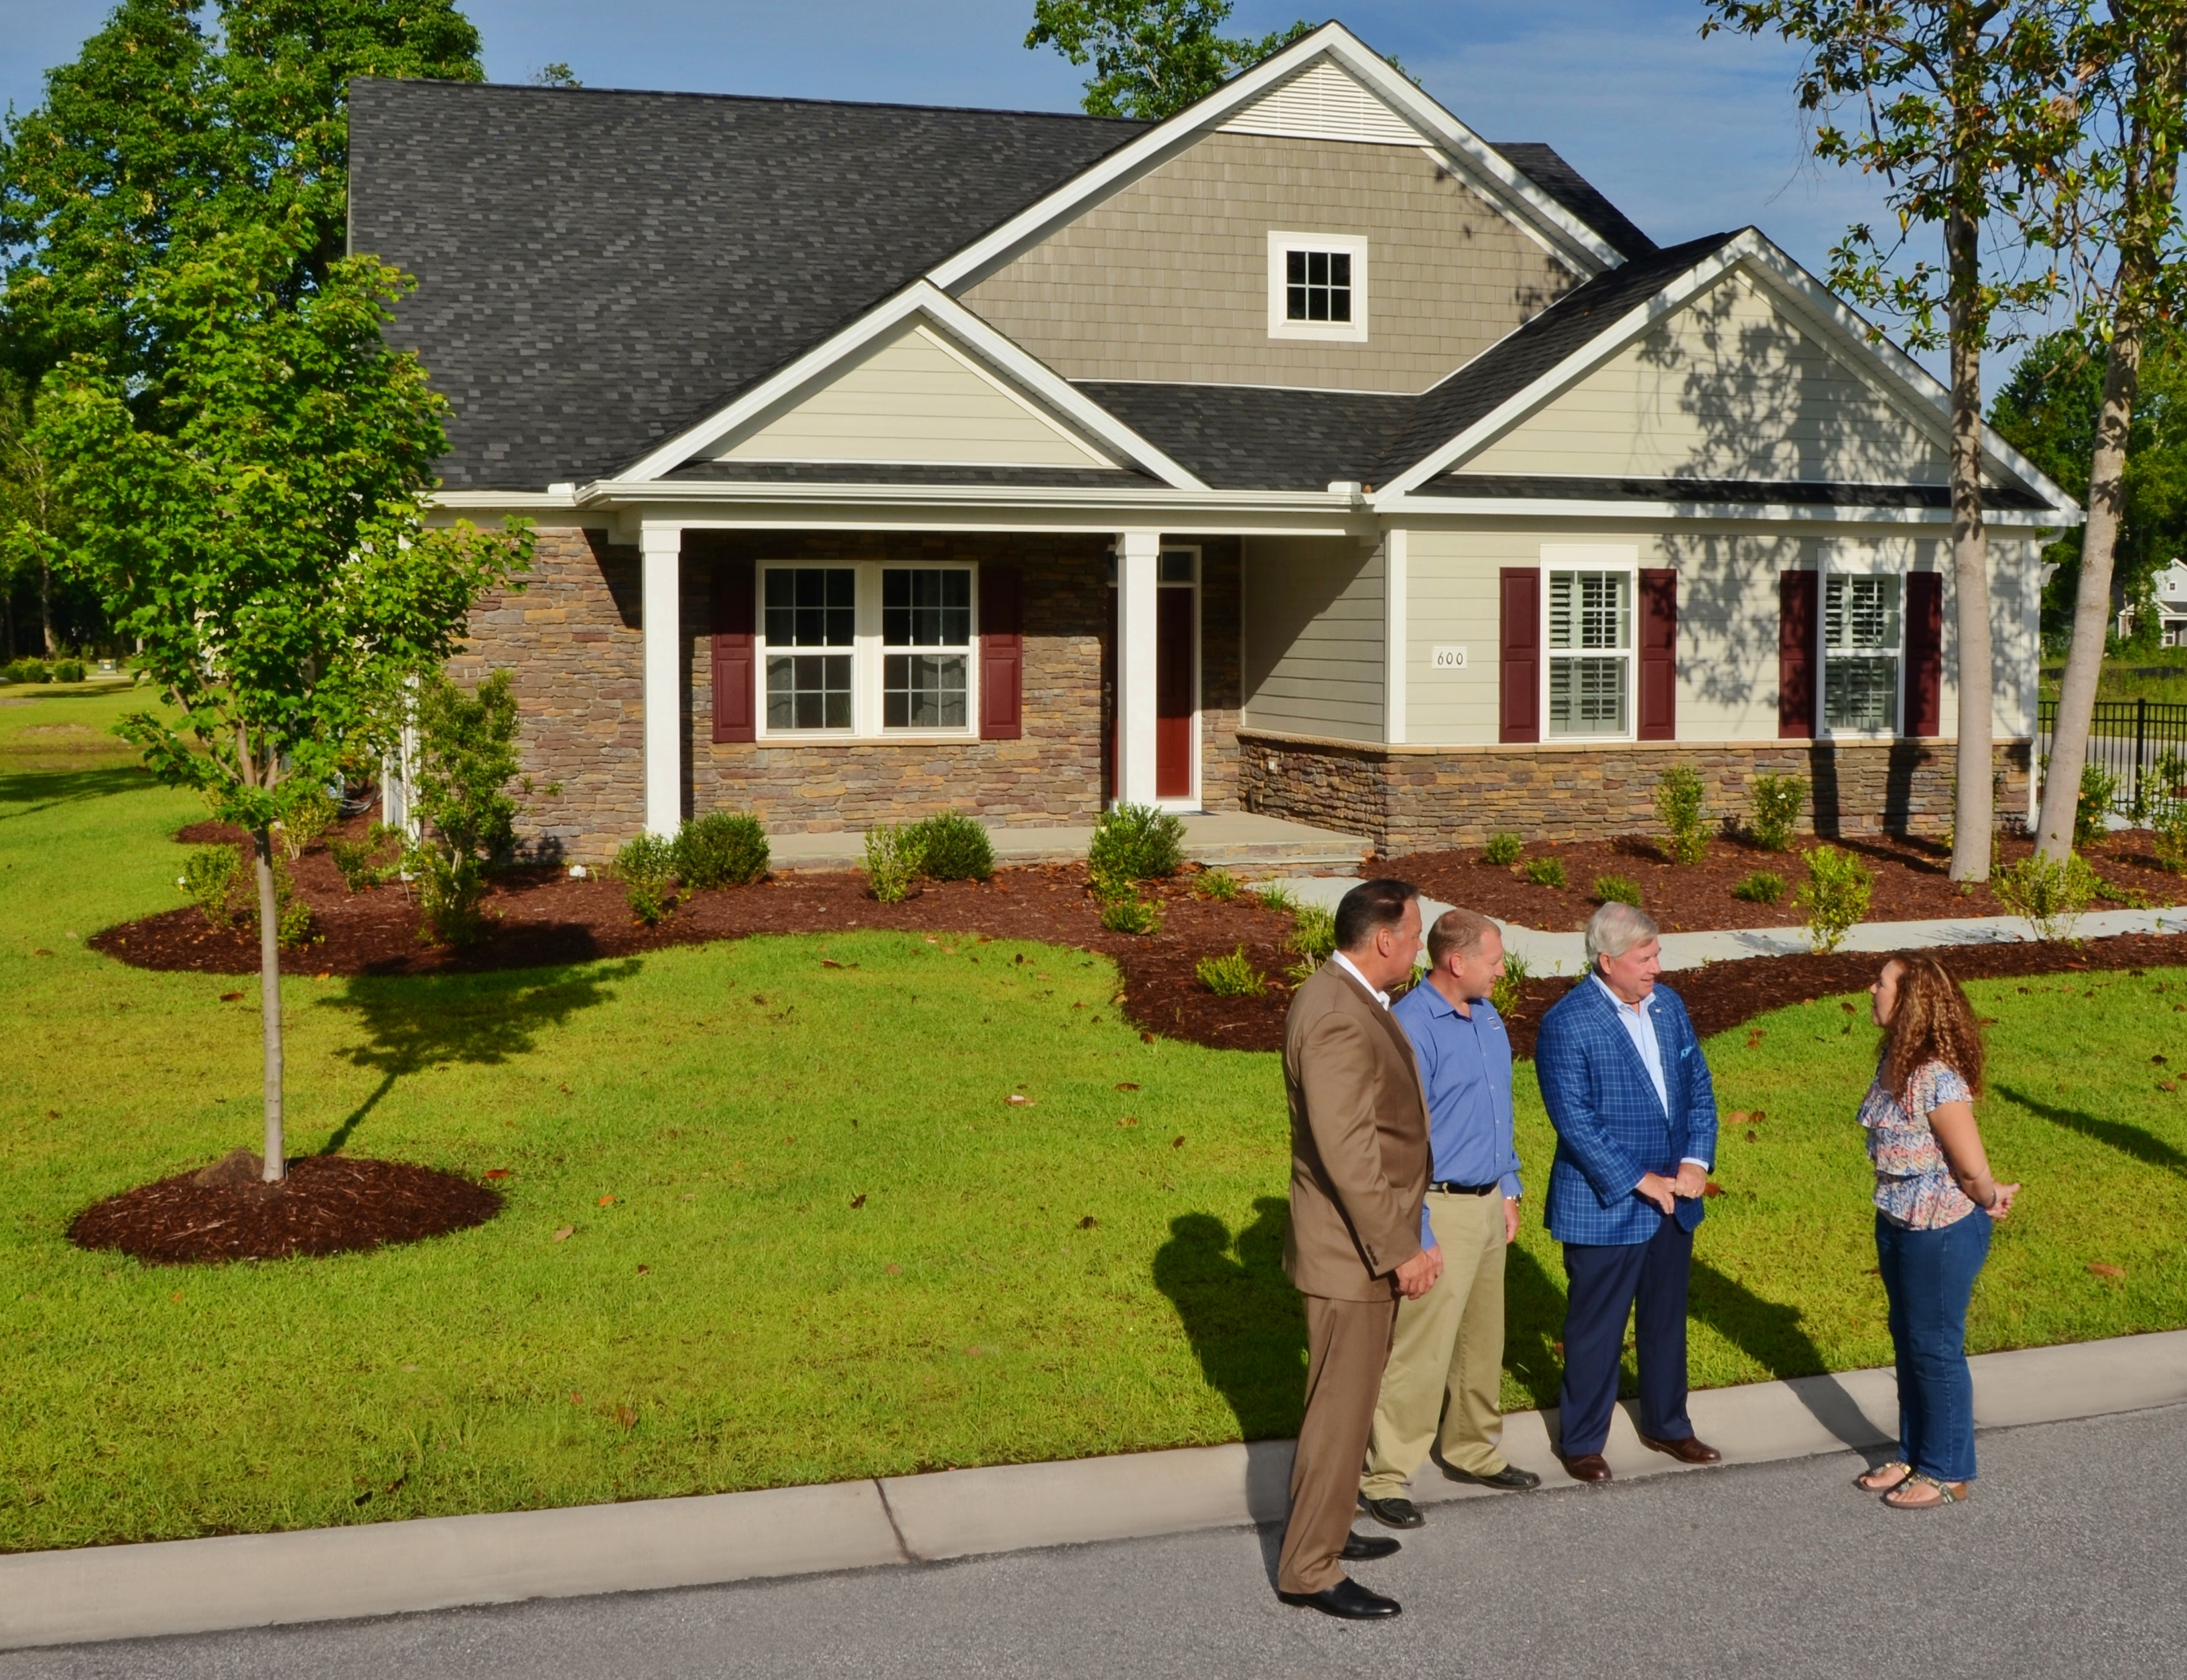 H Homes Reaching Higher For Quality And Satisfaction